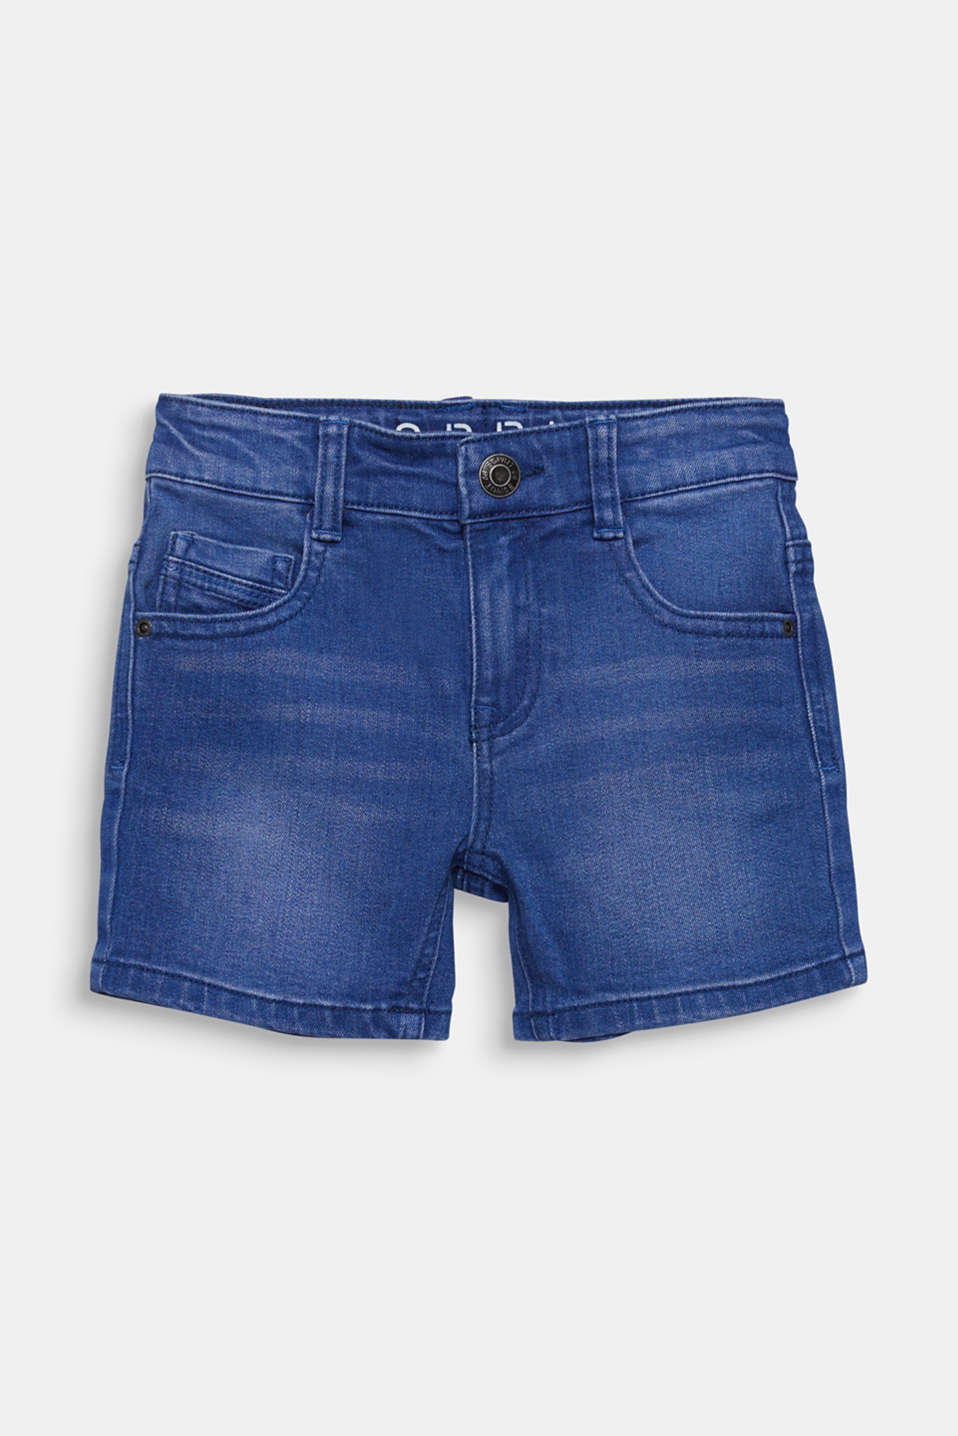 Stretch coloured denim shorts, adjustable waistband, BRIGHT BLUE DE, detail image number 0